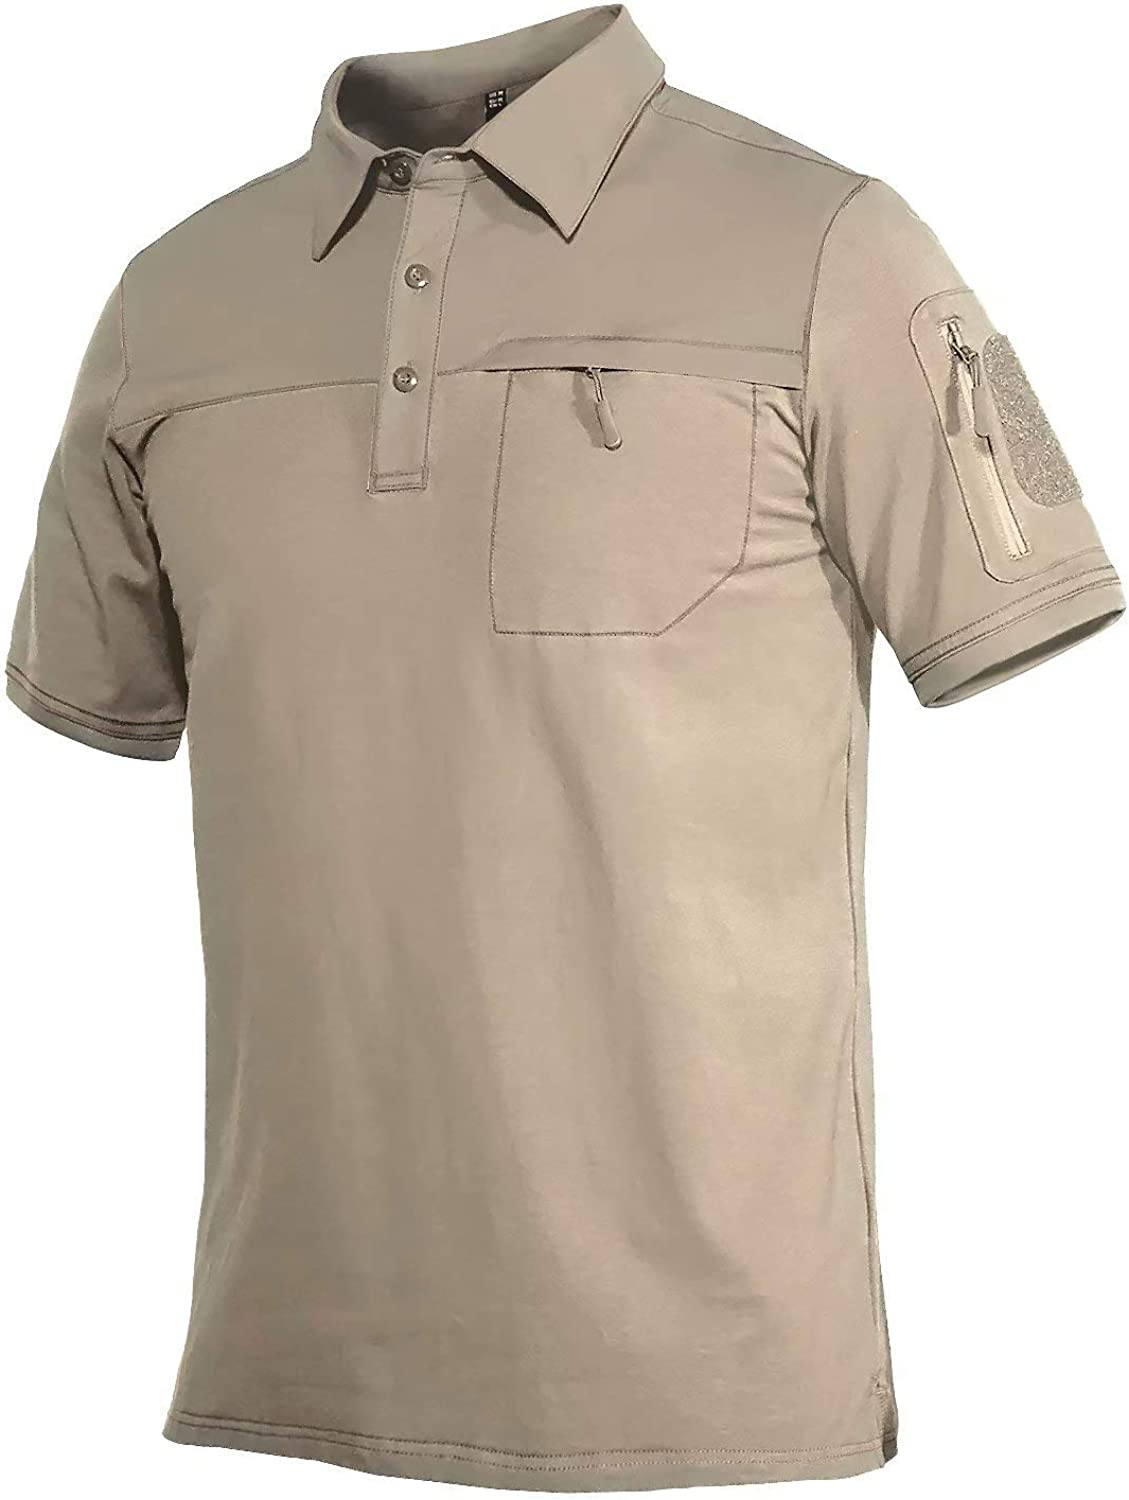 MAGCOMSEN Men's Polo Popular brand Shirts with 2 Very popular Loop Patches Zipper Pockets C